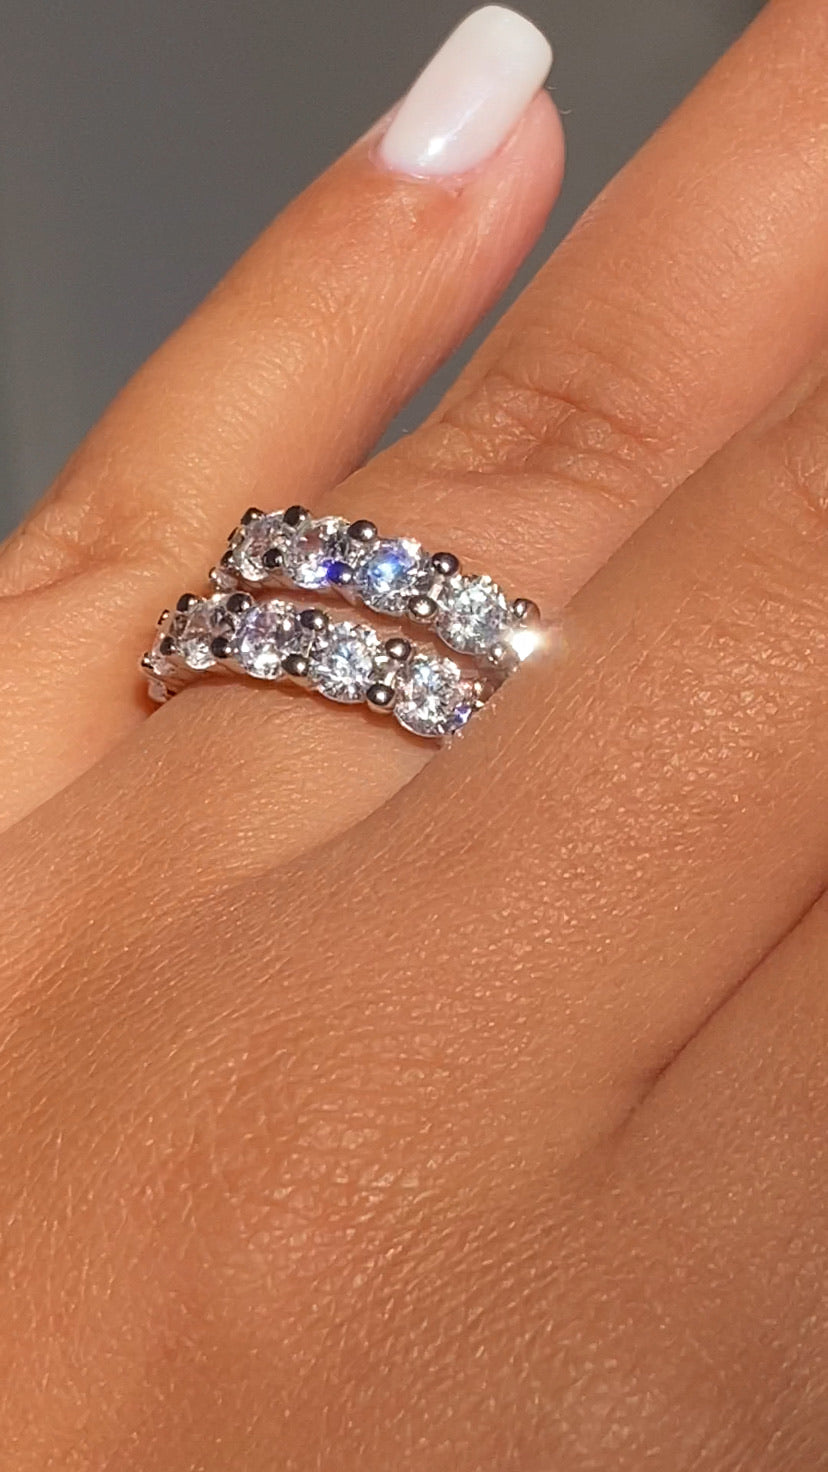 Ring Set (Comes with 2 separate Rings of the SAME size)  Round Cut  925 Sterling Silver  4mm High Grade AAAAA Cz (Simulated diamonds)  ( Please measure fingers before purchasing/ all sales are FINAL )  Rings sold as a set of 2.